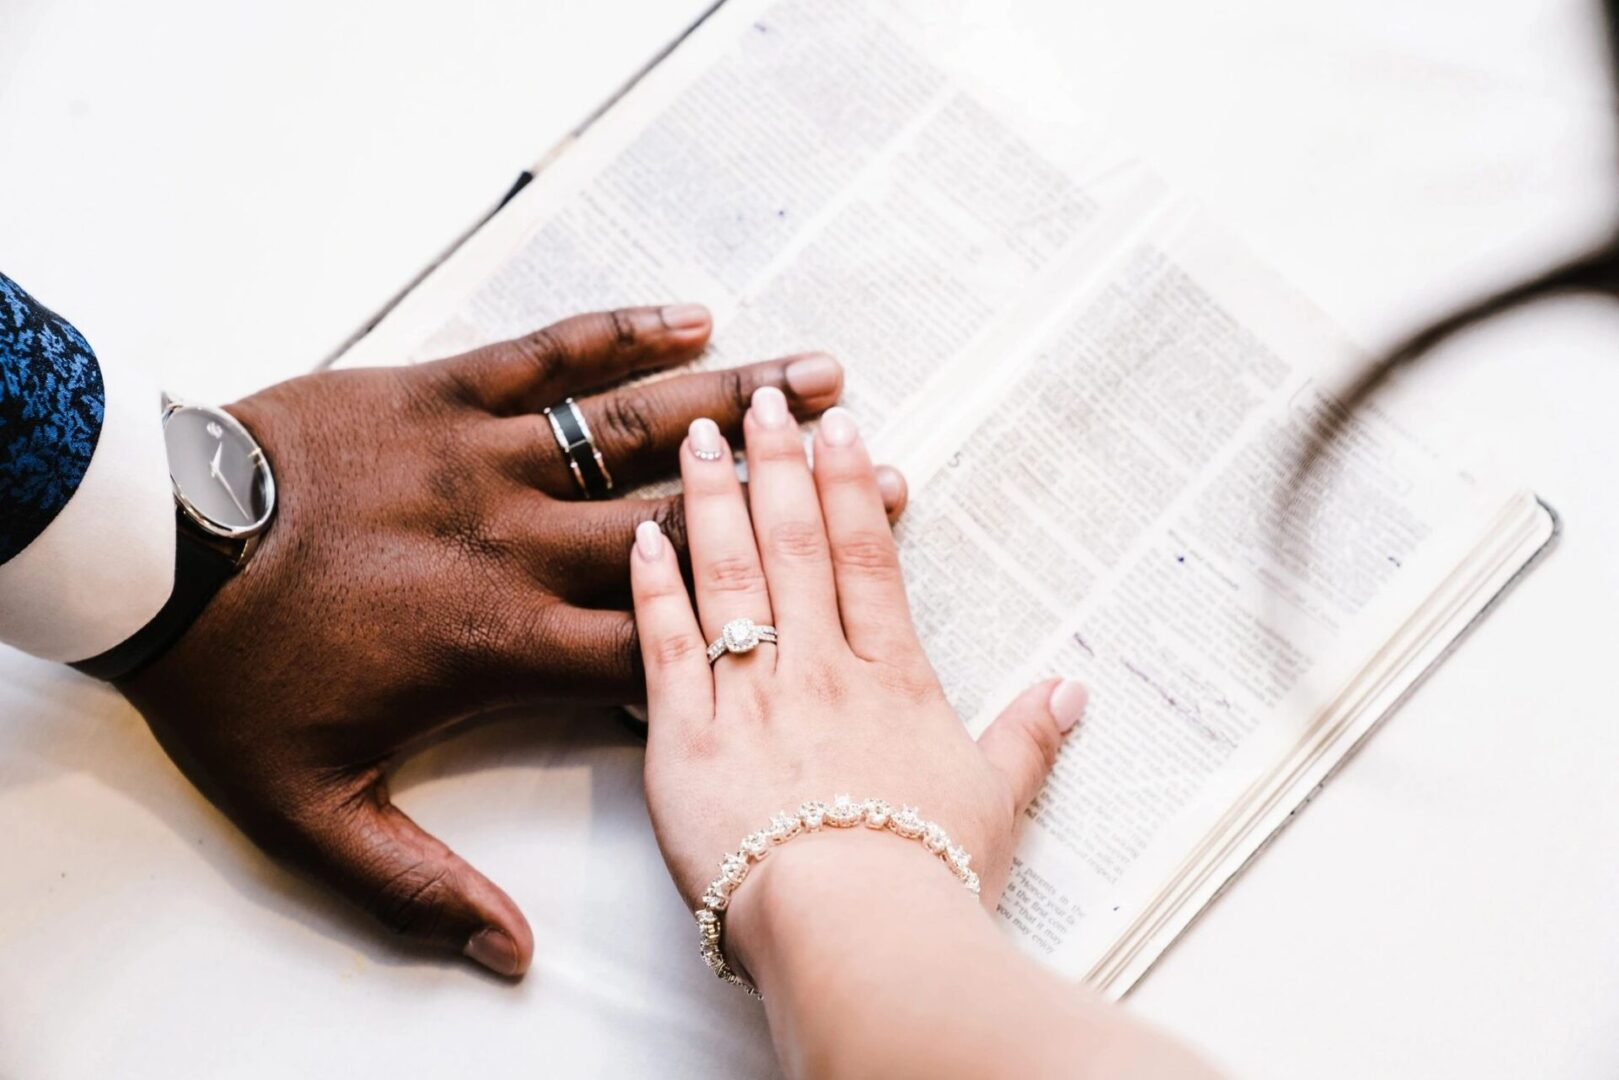 Relationships come in all different shapes and sizes that is why we explore barriers in your relationship in order to help you open up to grater possibilities of love, respect and trust